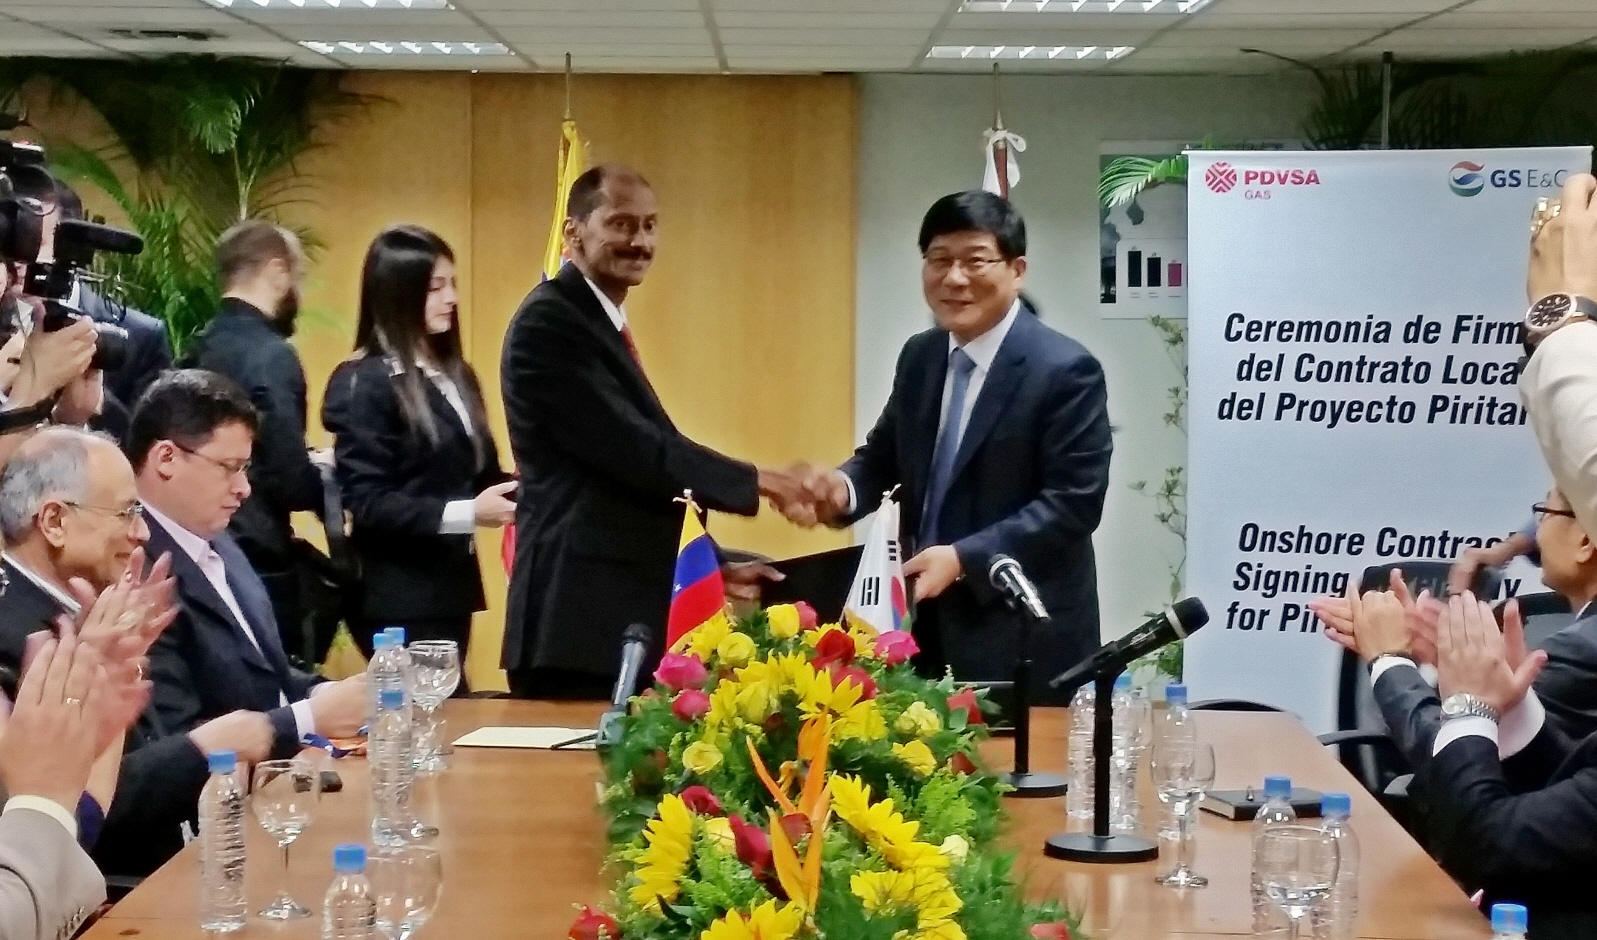 Huh Sun-haeng, head of the plant sector at GS E&C, shakes hands with Anton Castillo, president of PDVSA Gas.